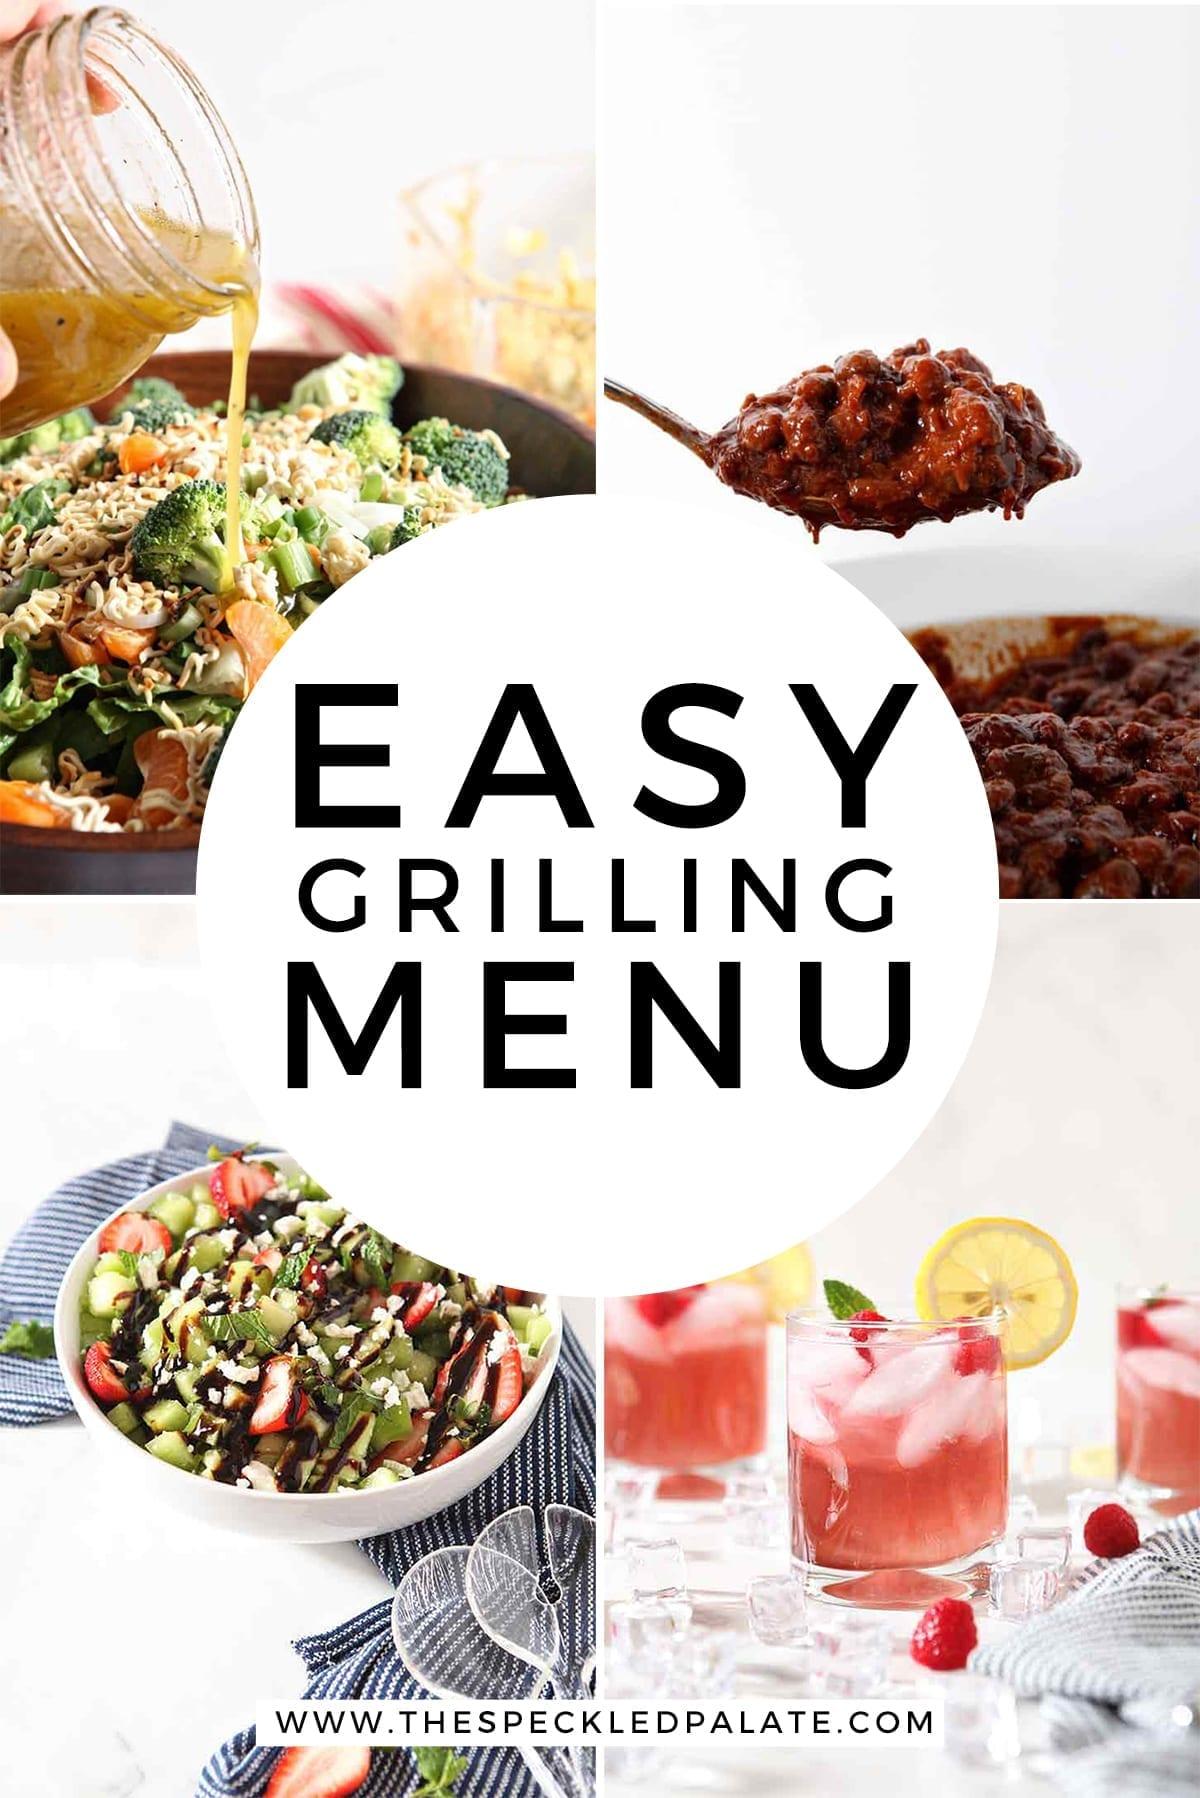 A collage of four images sharing Easy Grilling Menu items